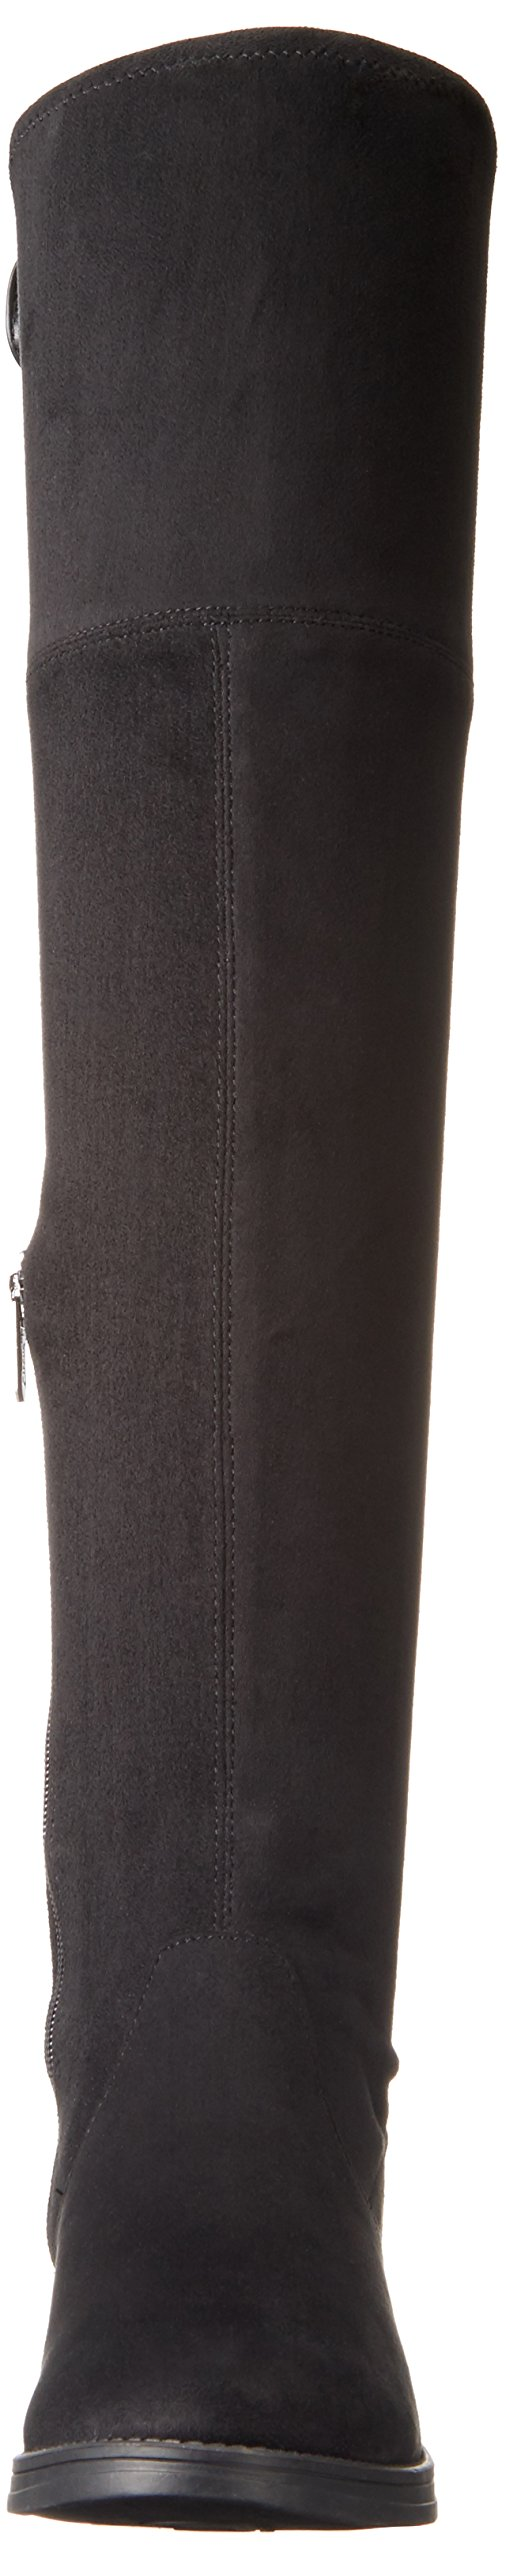 Circus by Sam Edelman Women's Peyton Over The Knee Boot, Black, 6.5 Medium US by Circus by Sam Edelman (Image #4)